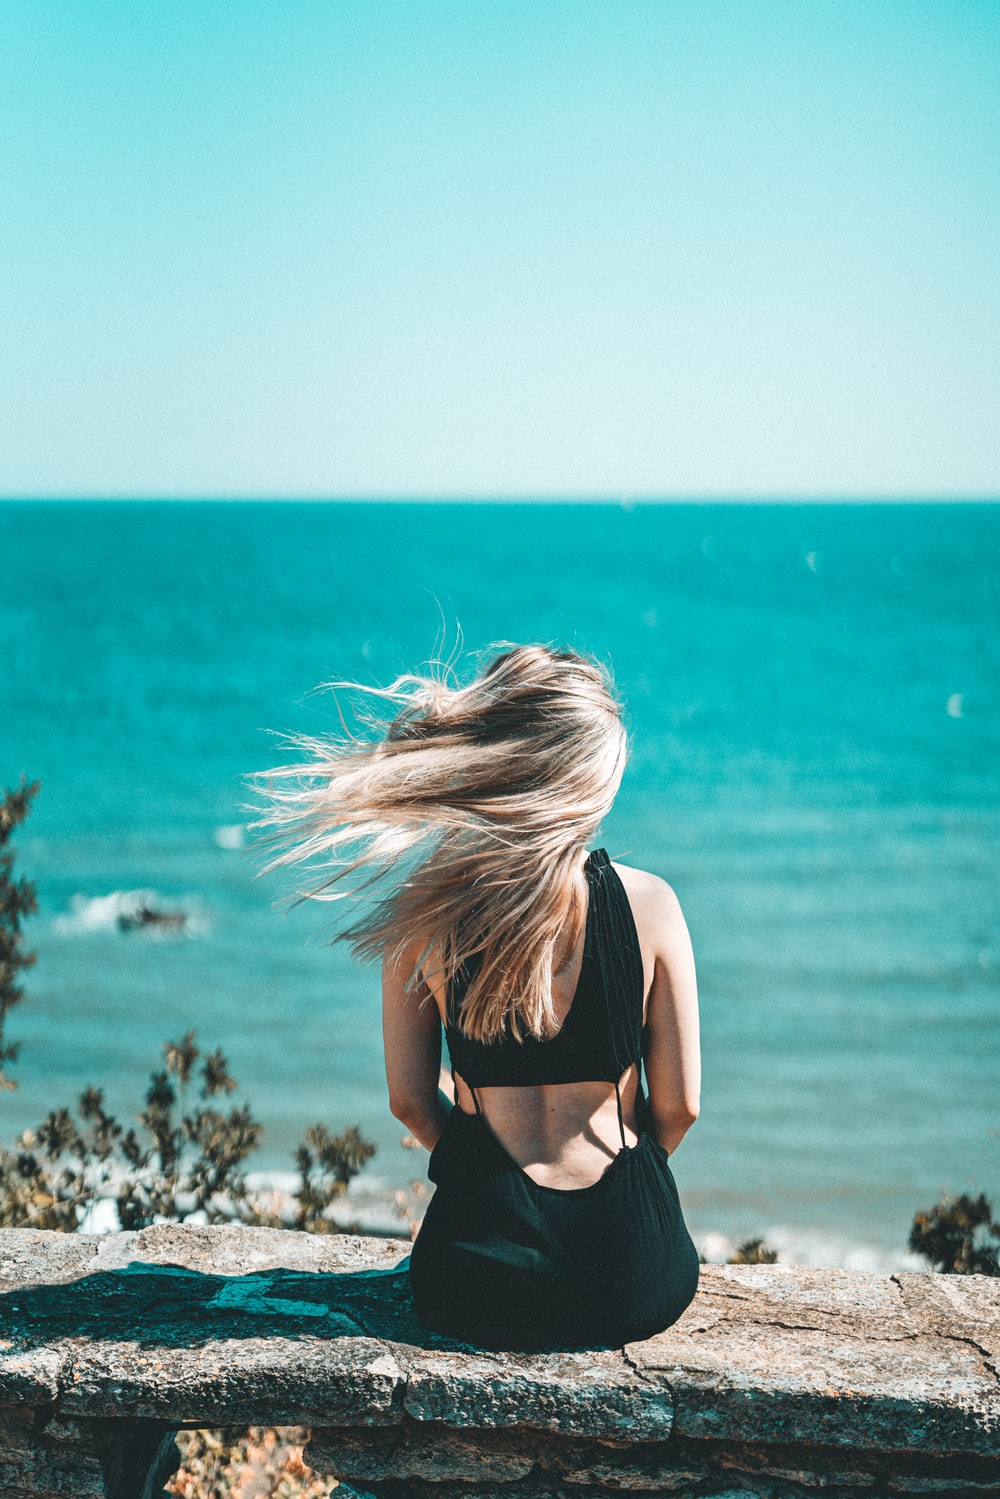 woman in black brassiere standing near sea during daytime